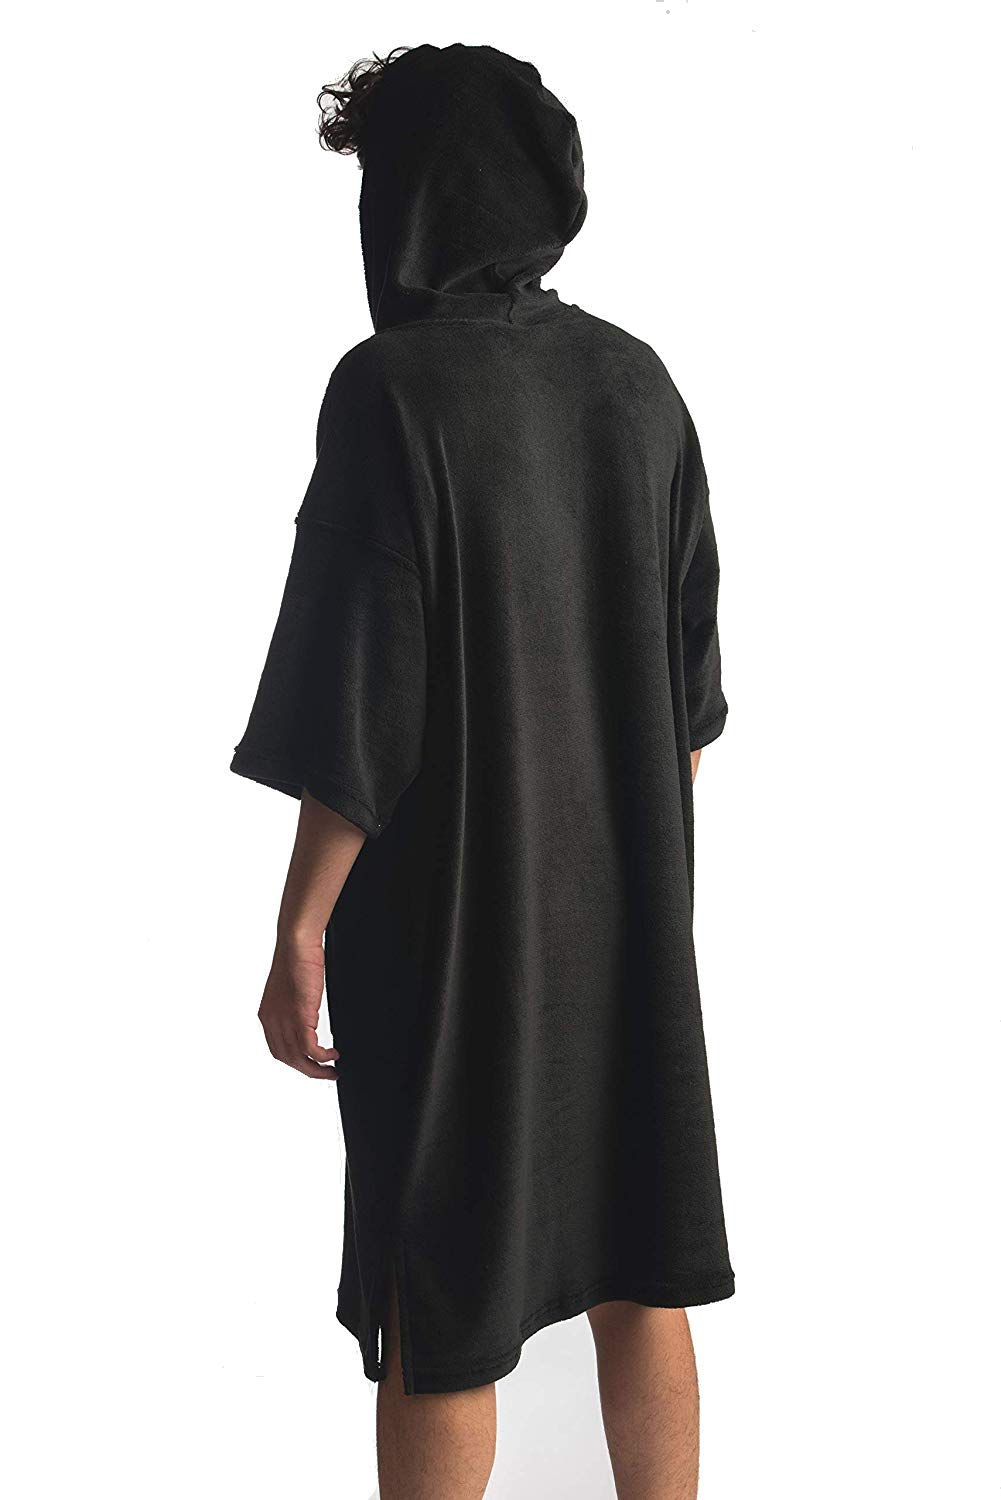 Hurley M One/&Only Poncho Toallas Hombre